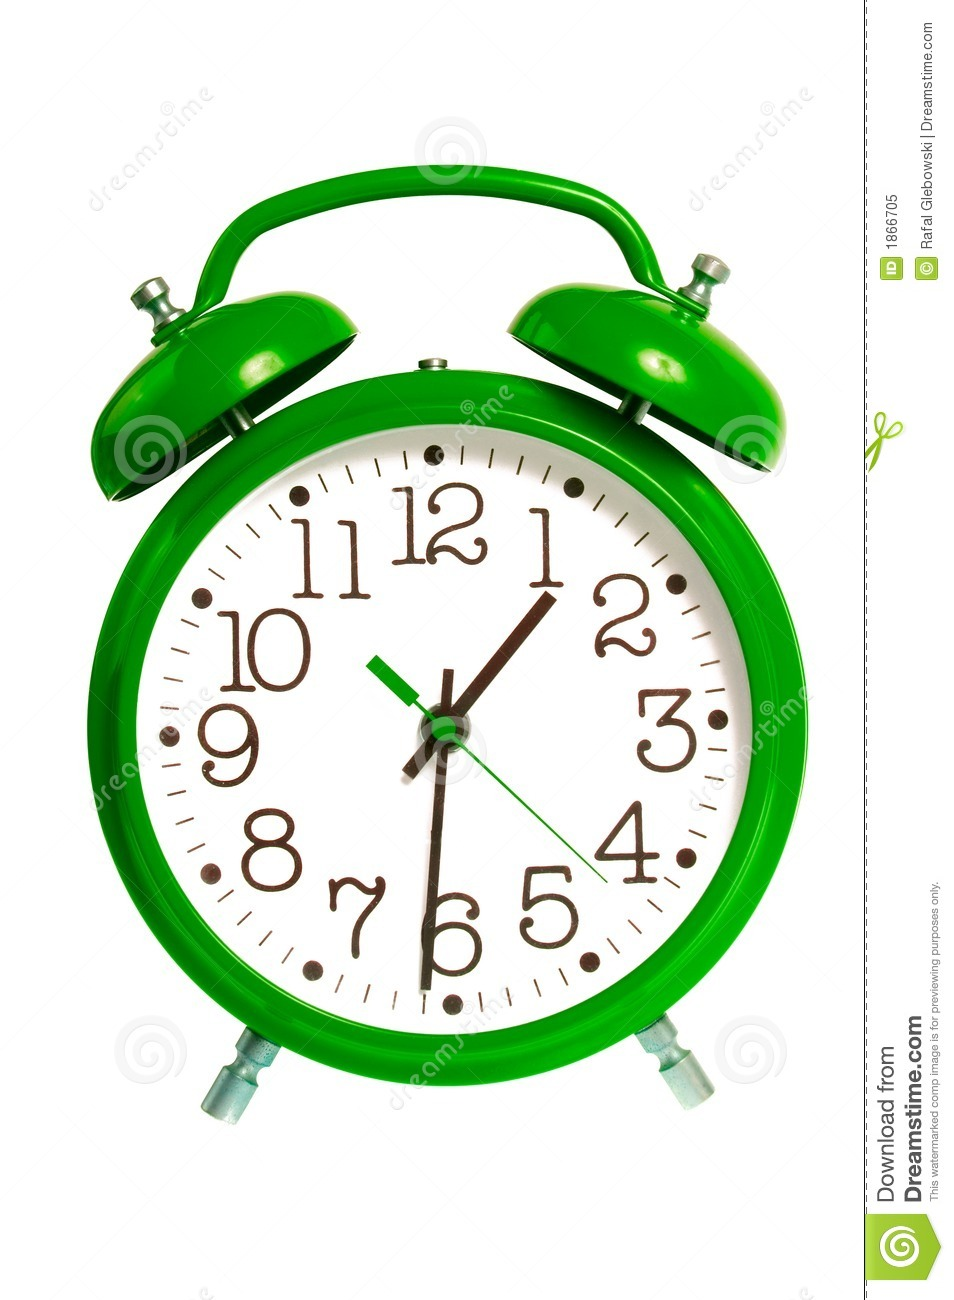 Green Alarm Clock Isolated Royalty Free Stock Photo - Image: 1866705